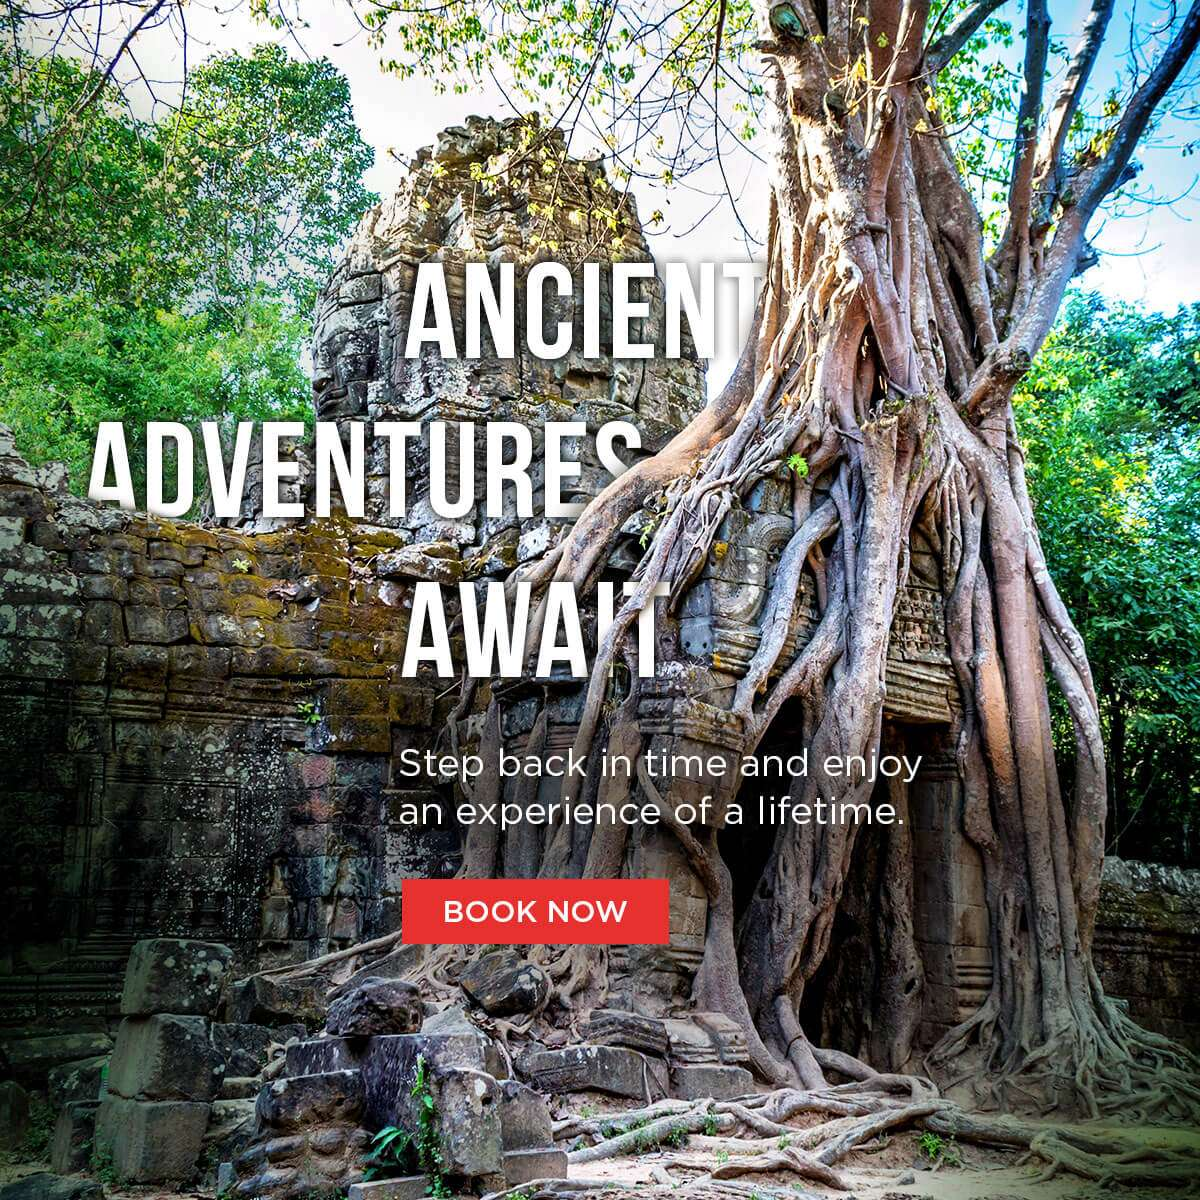 Ancient adventures await! Step back in time and enjoy an experience of a lifetime.